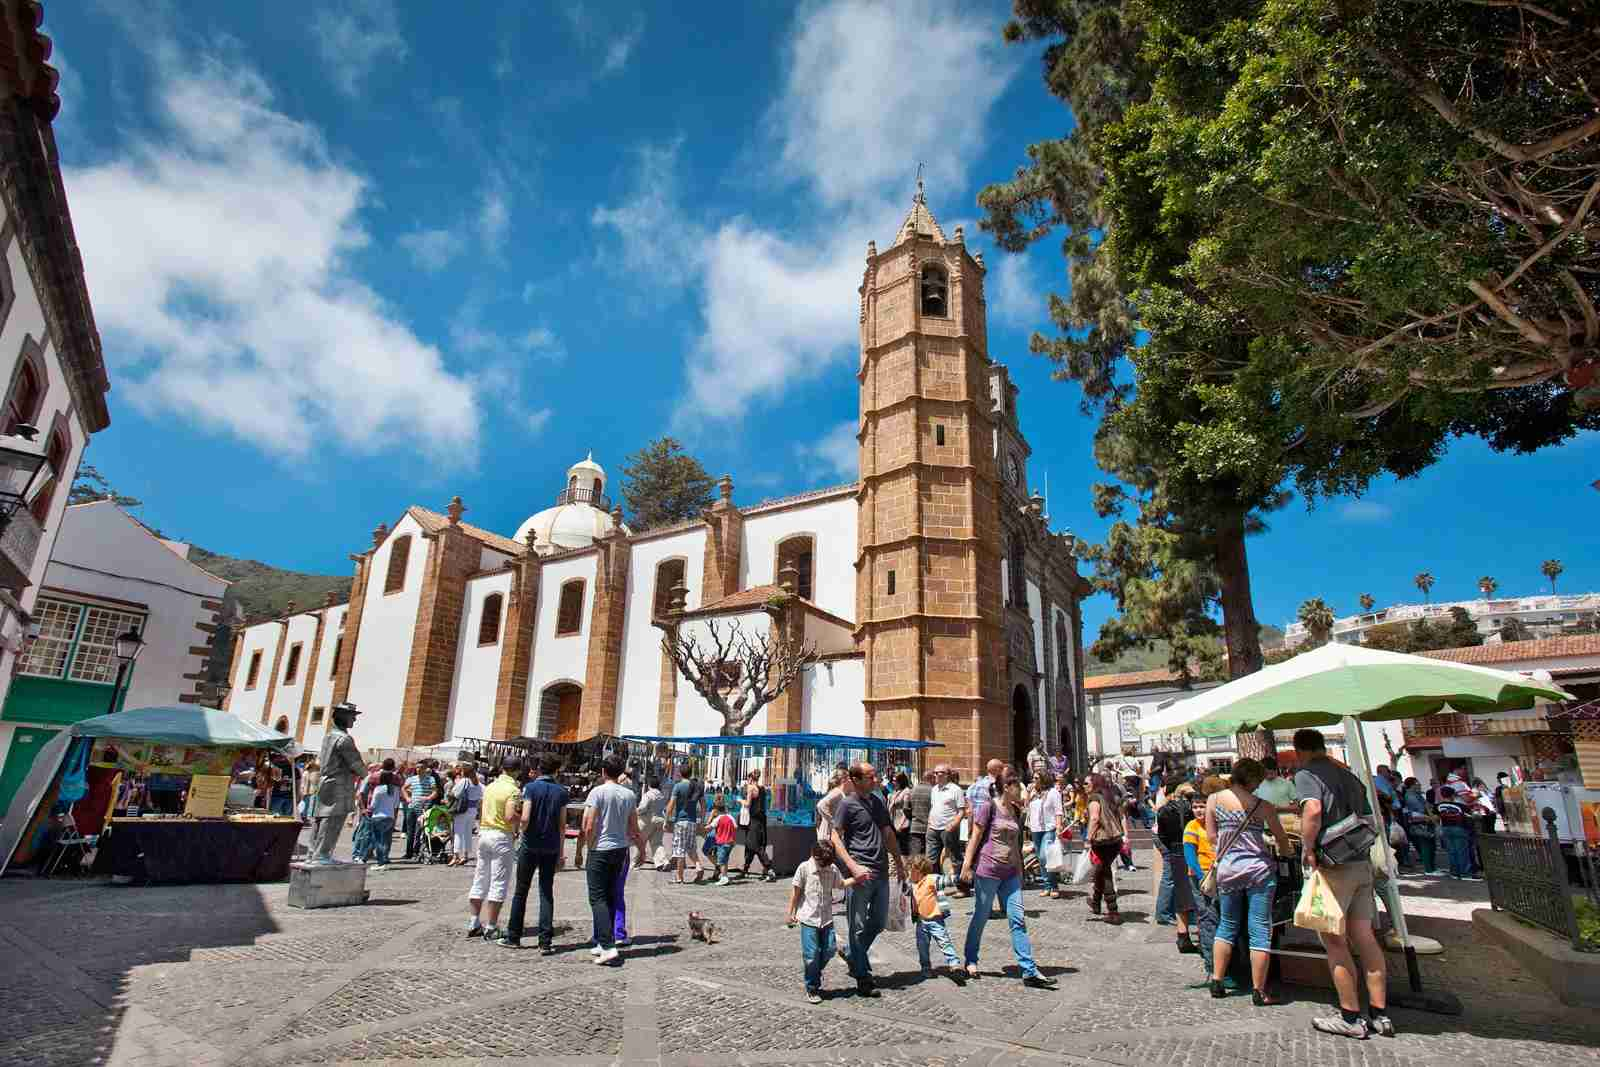 A farmers market in the Basilica Nuestra in Gran Canaria. (Photo by Sabine Lubenow / LOOK foto / Getty Images)